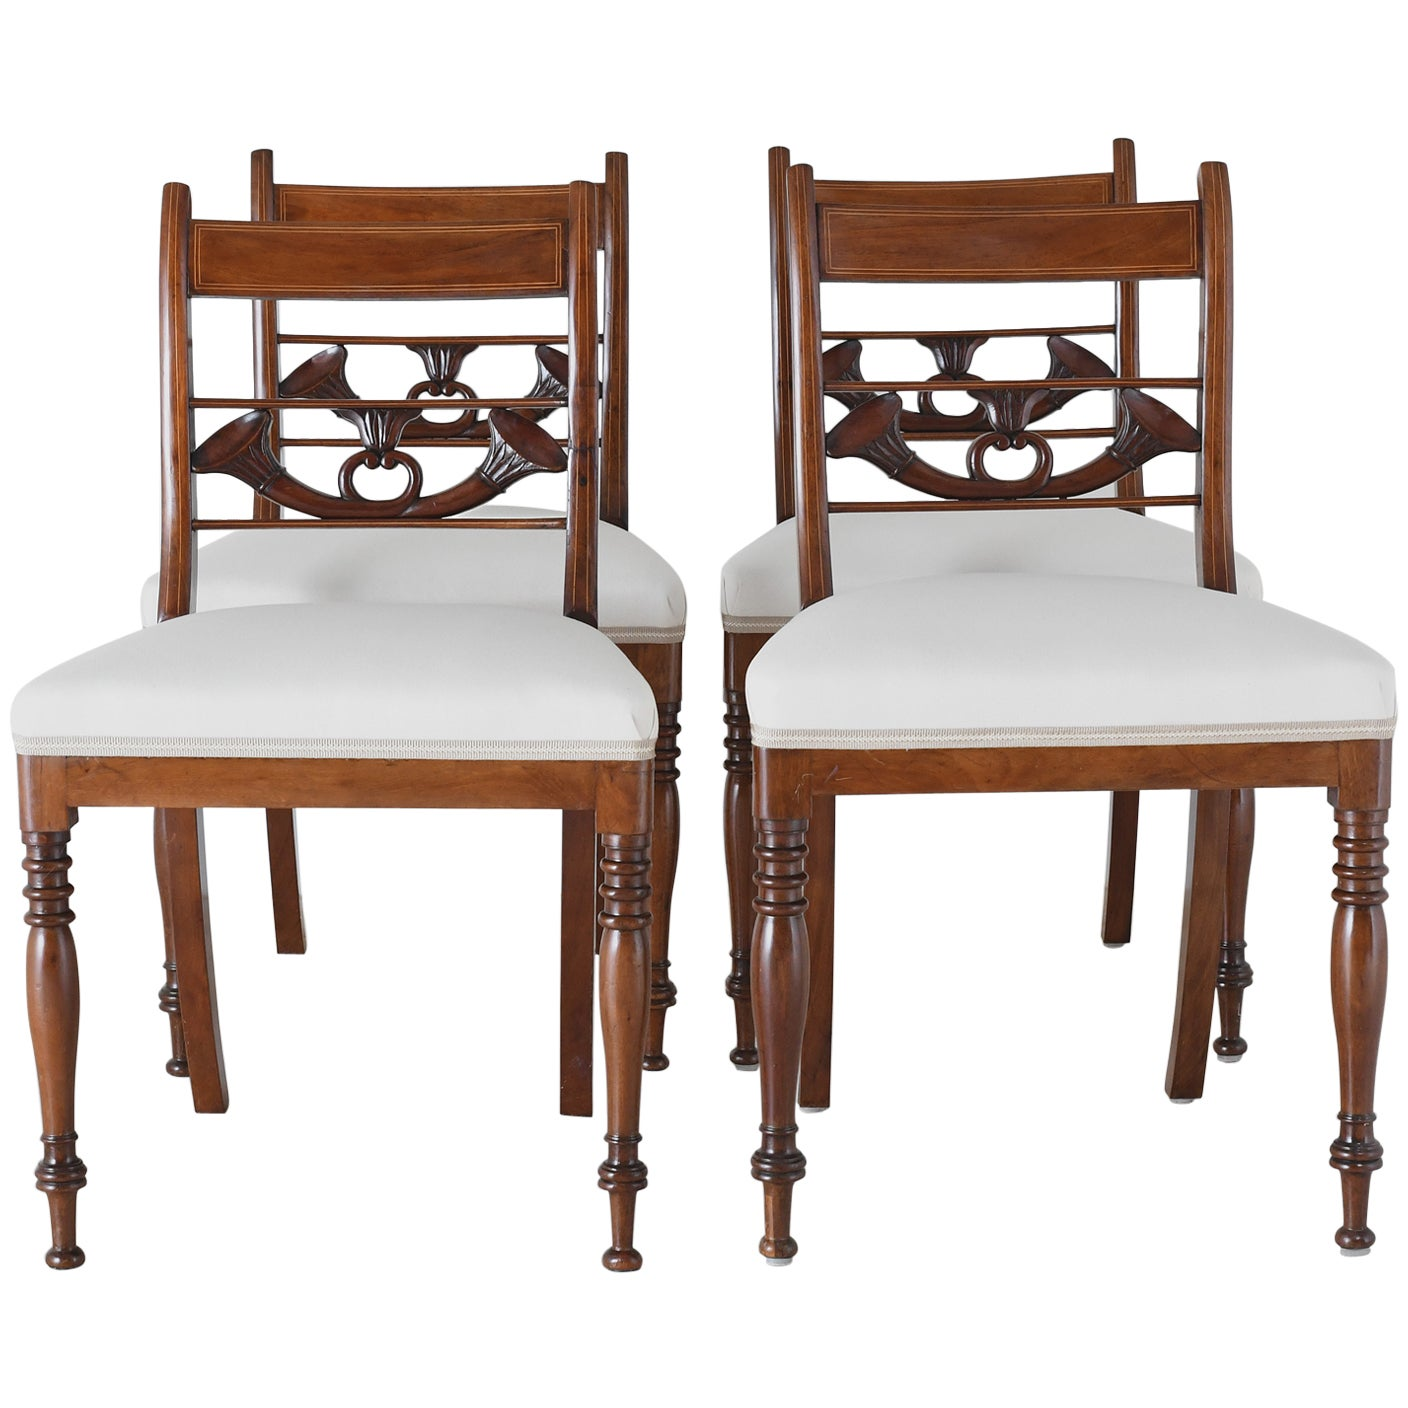 Set of 4 Antique English Regency Dining Chairs in Mahogany w/ Upholstered Seat